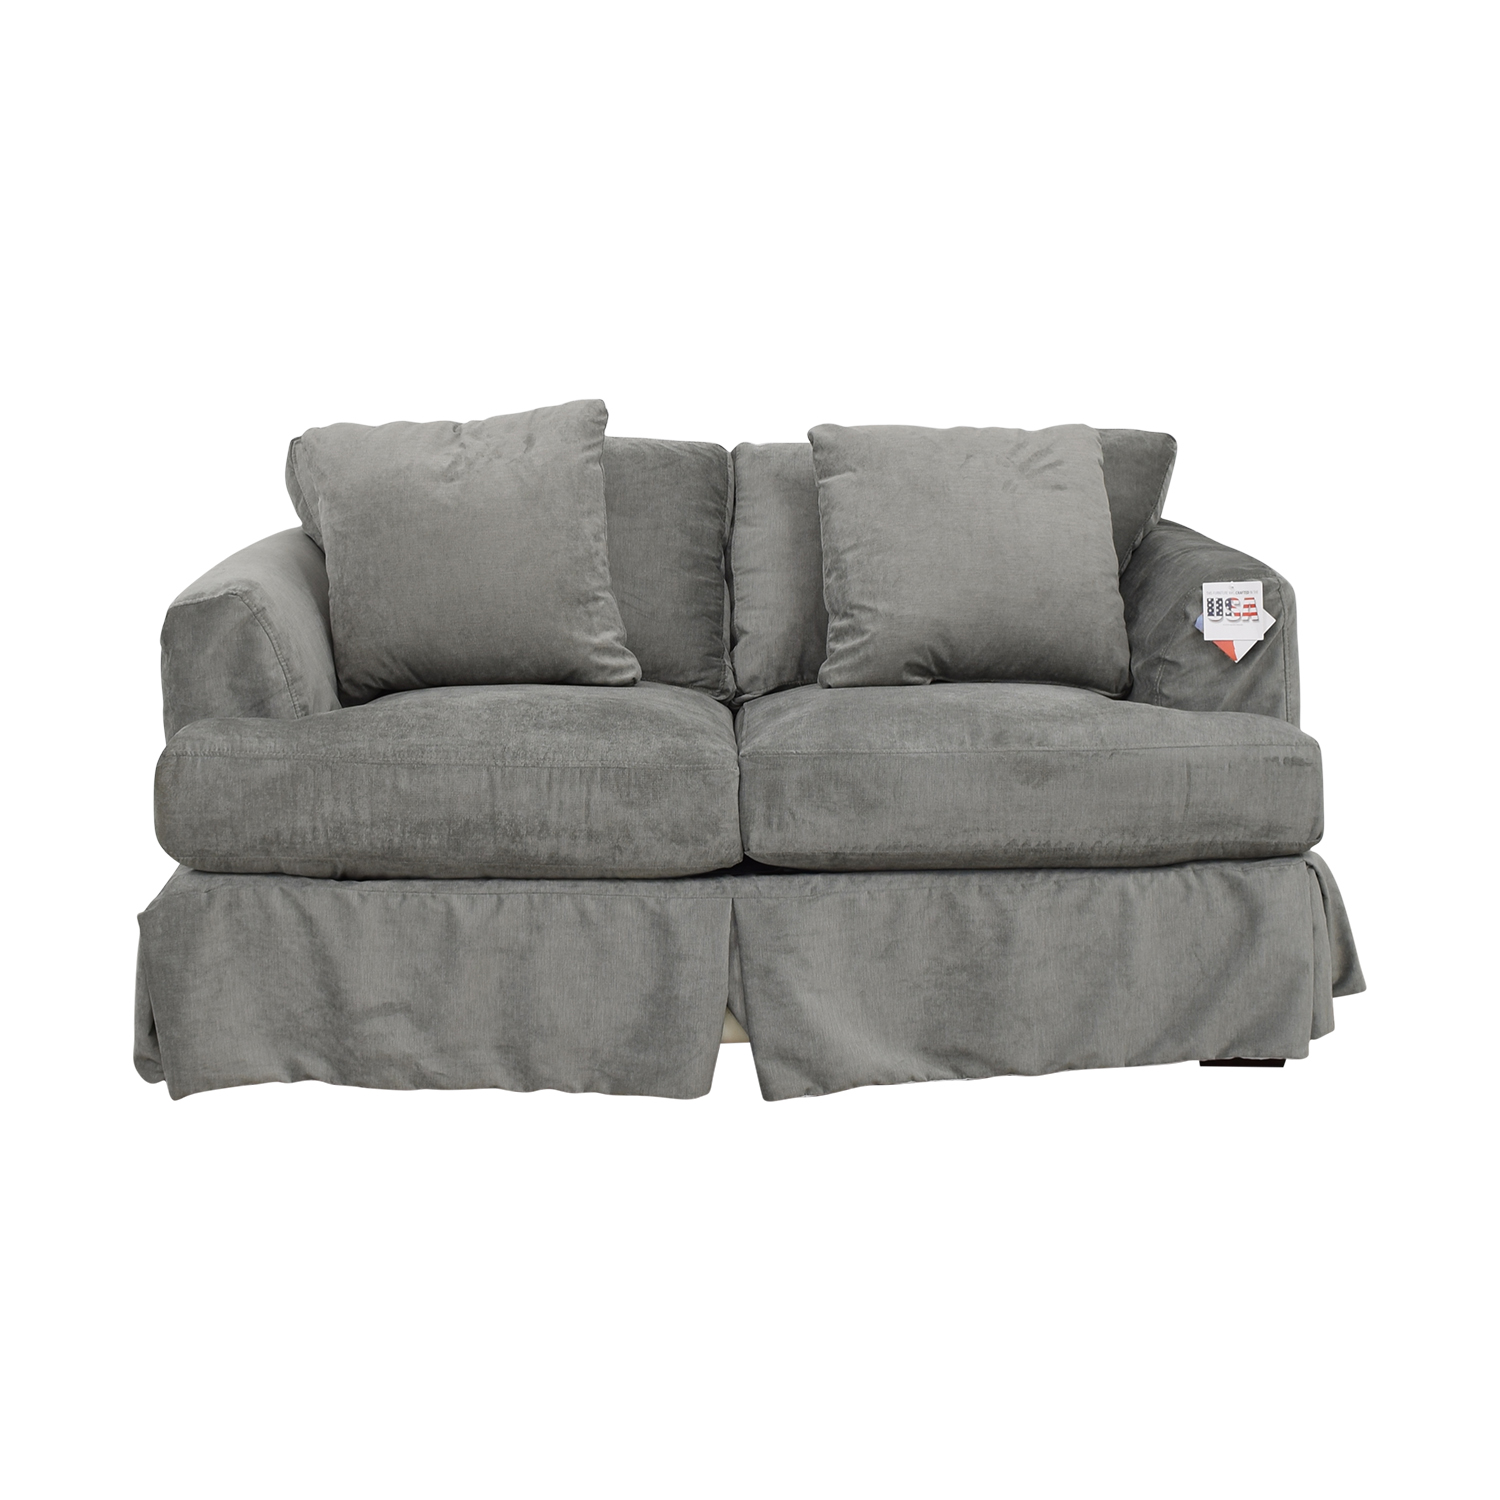 shop Wayfair Grey Upholstered Two-Cushion Loveseat Wayfair Loveseats